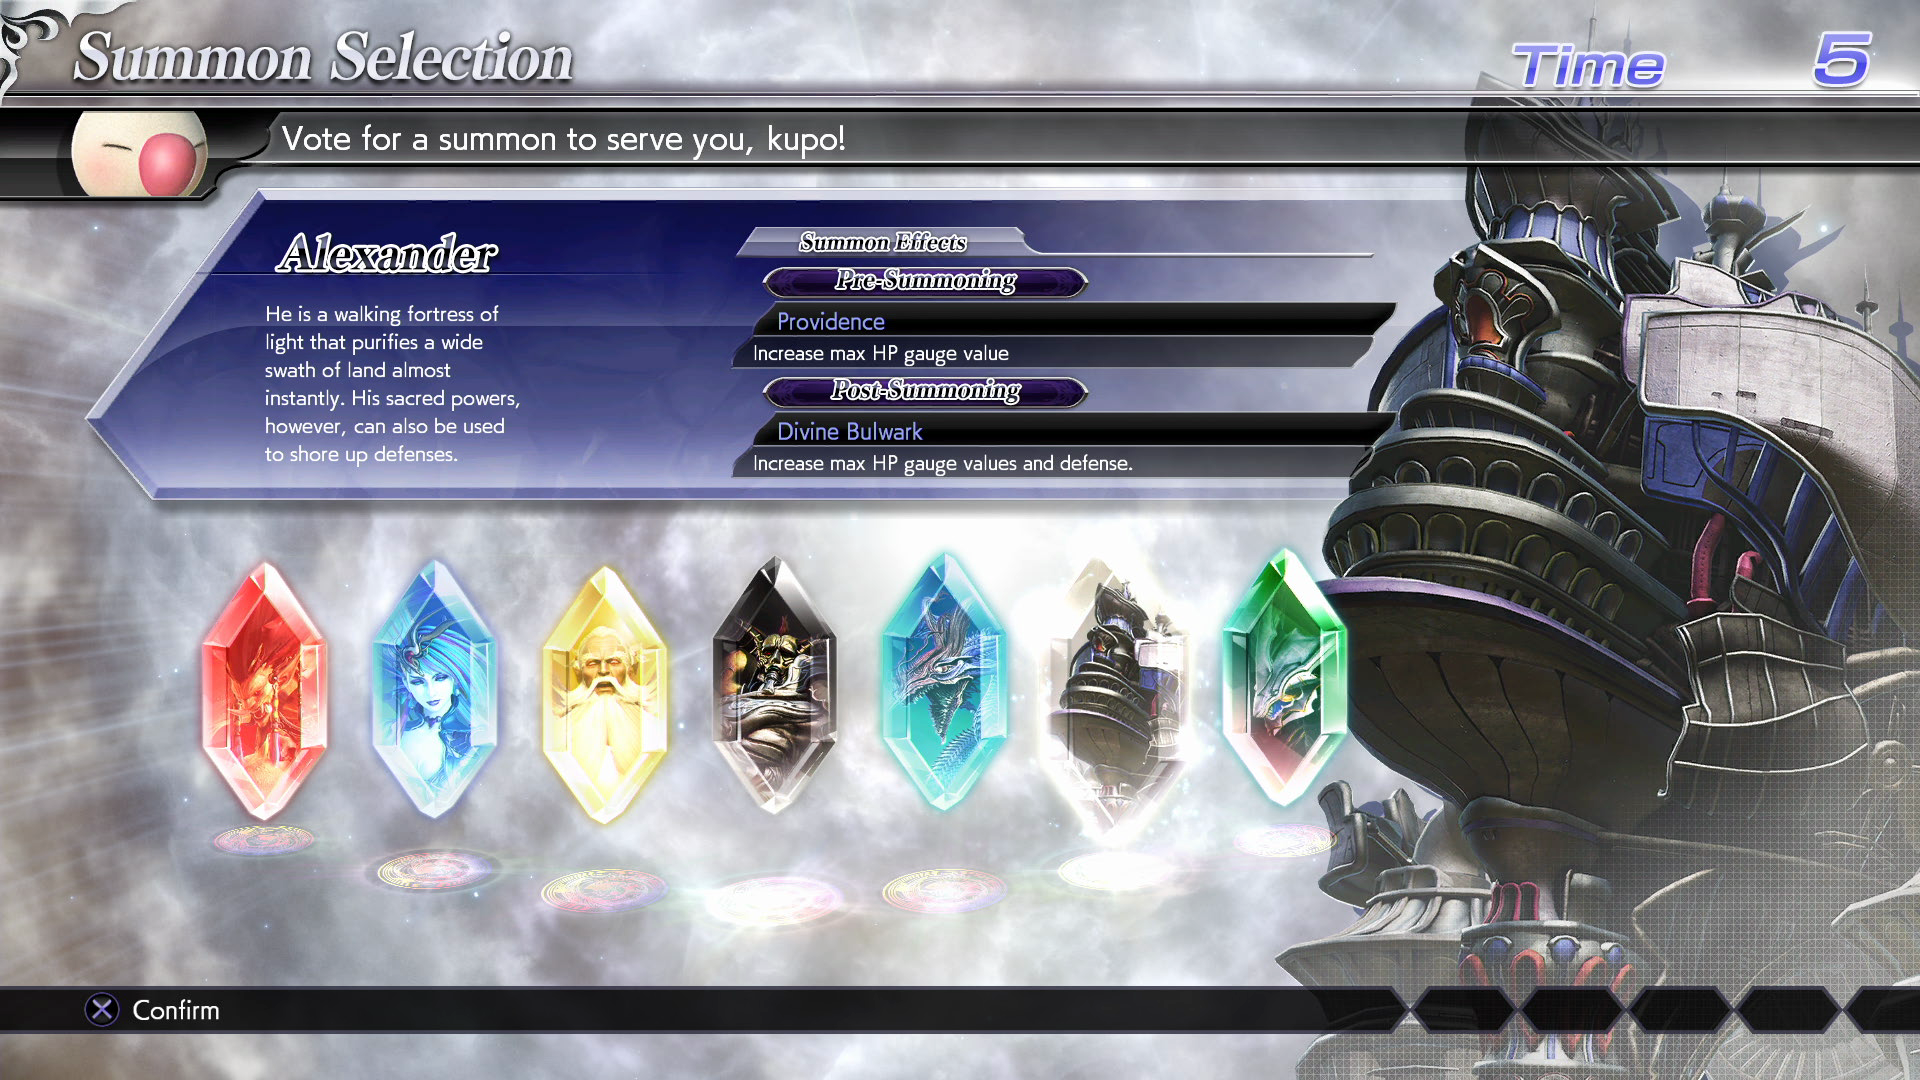 Dissidia Final Fantasy NT Summons guide: how to summon, and